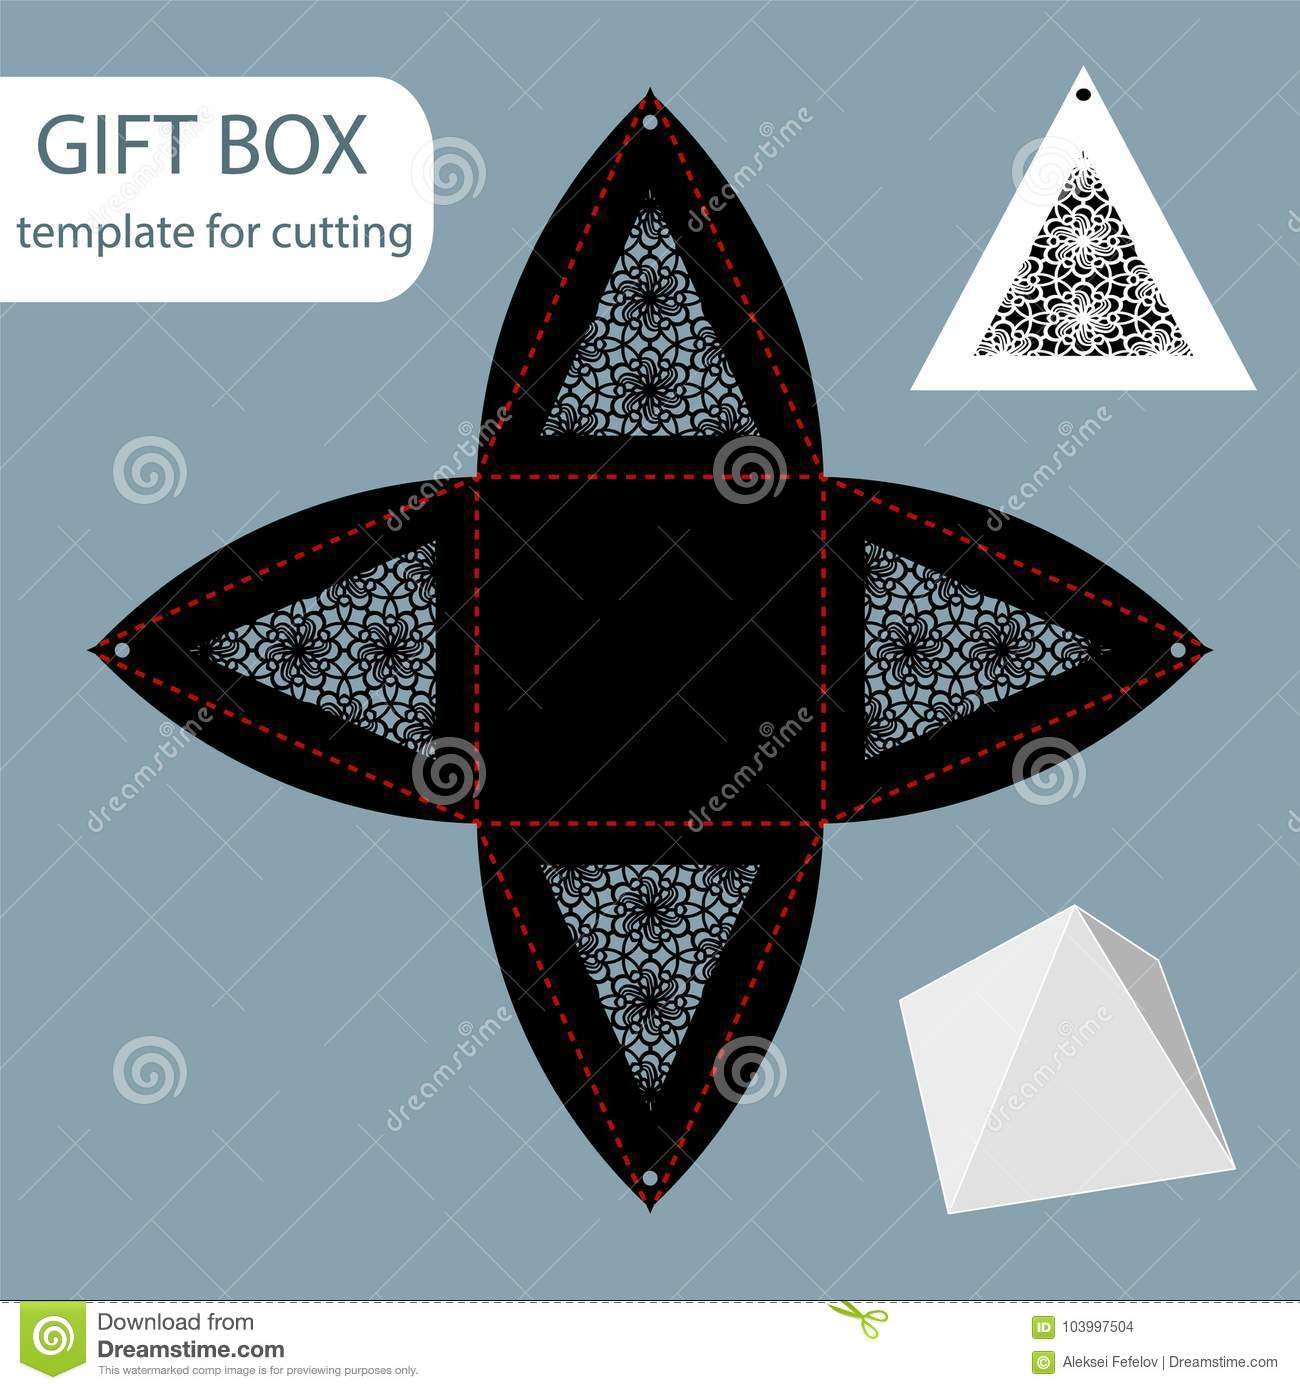 Paper Gift Box Lace Pattern Pyramid With A Square Bottom Cut Out Template Packaging For Retail Greeting Can Be Laser